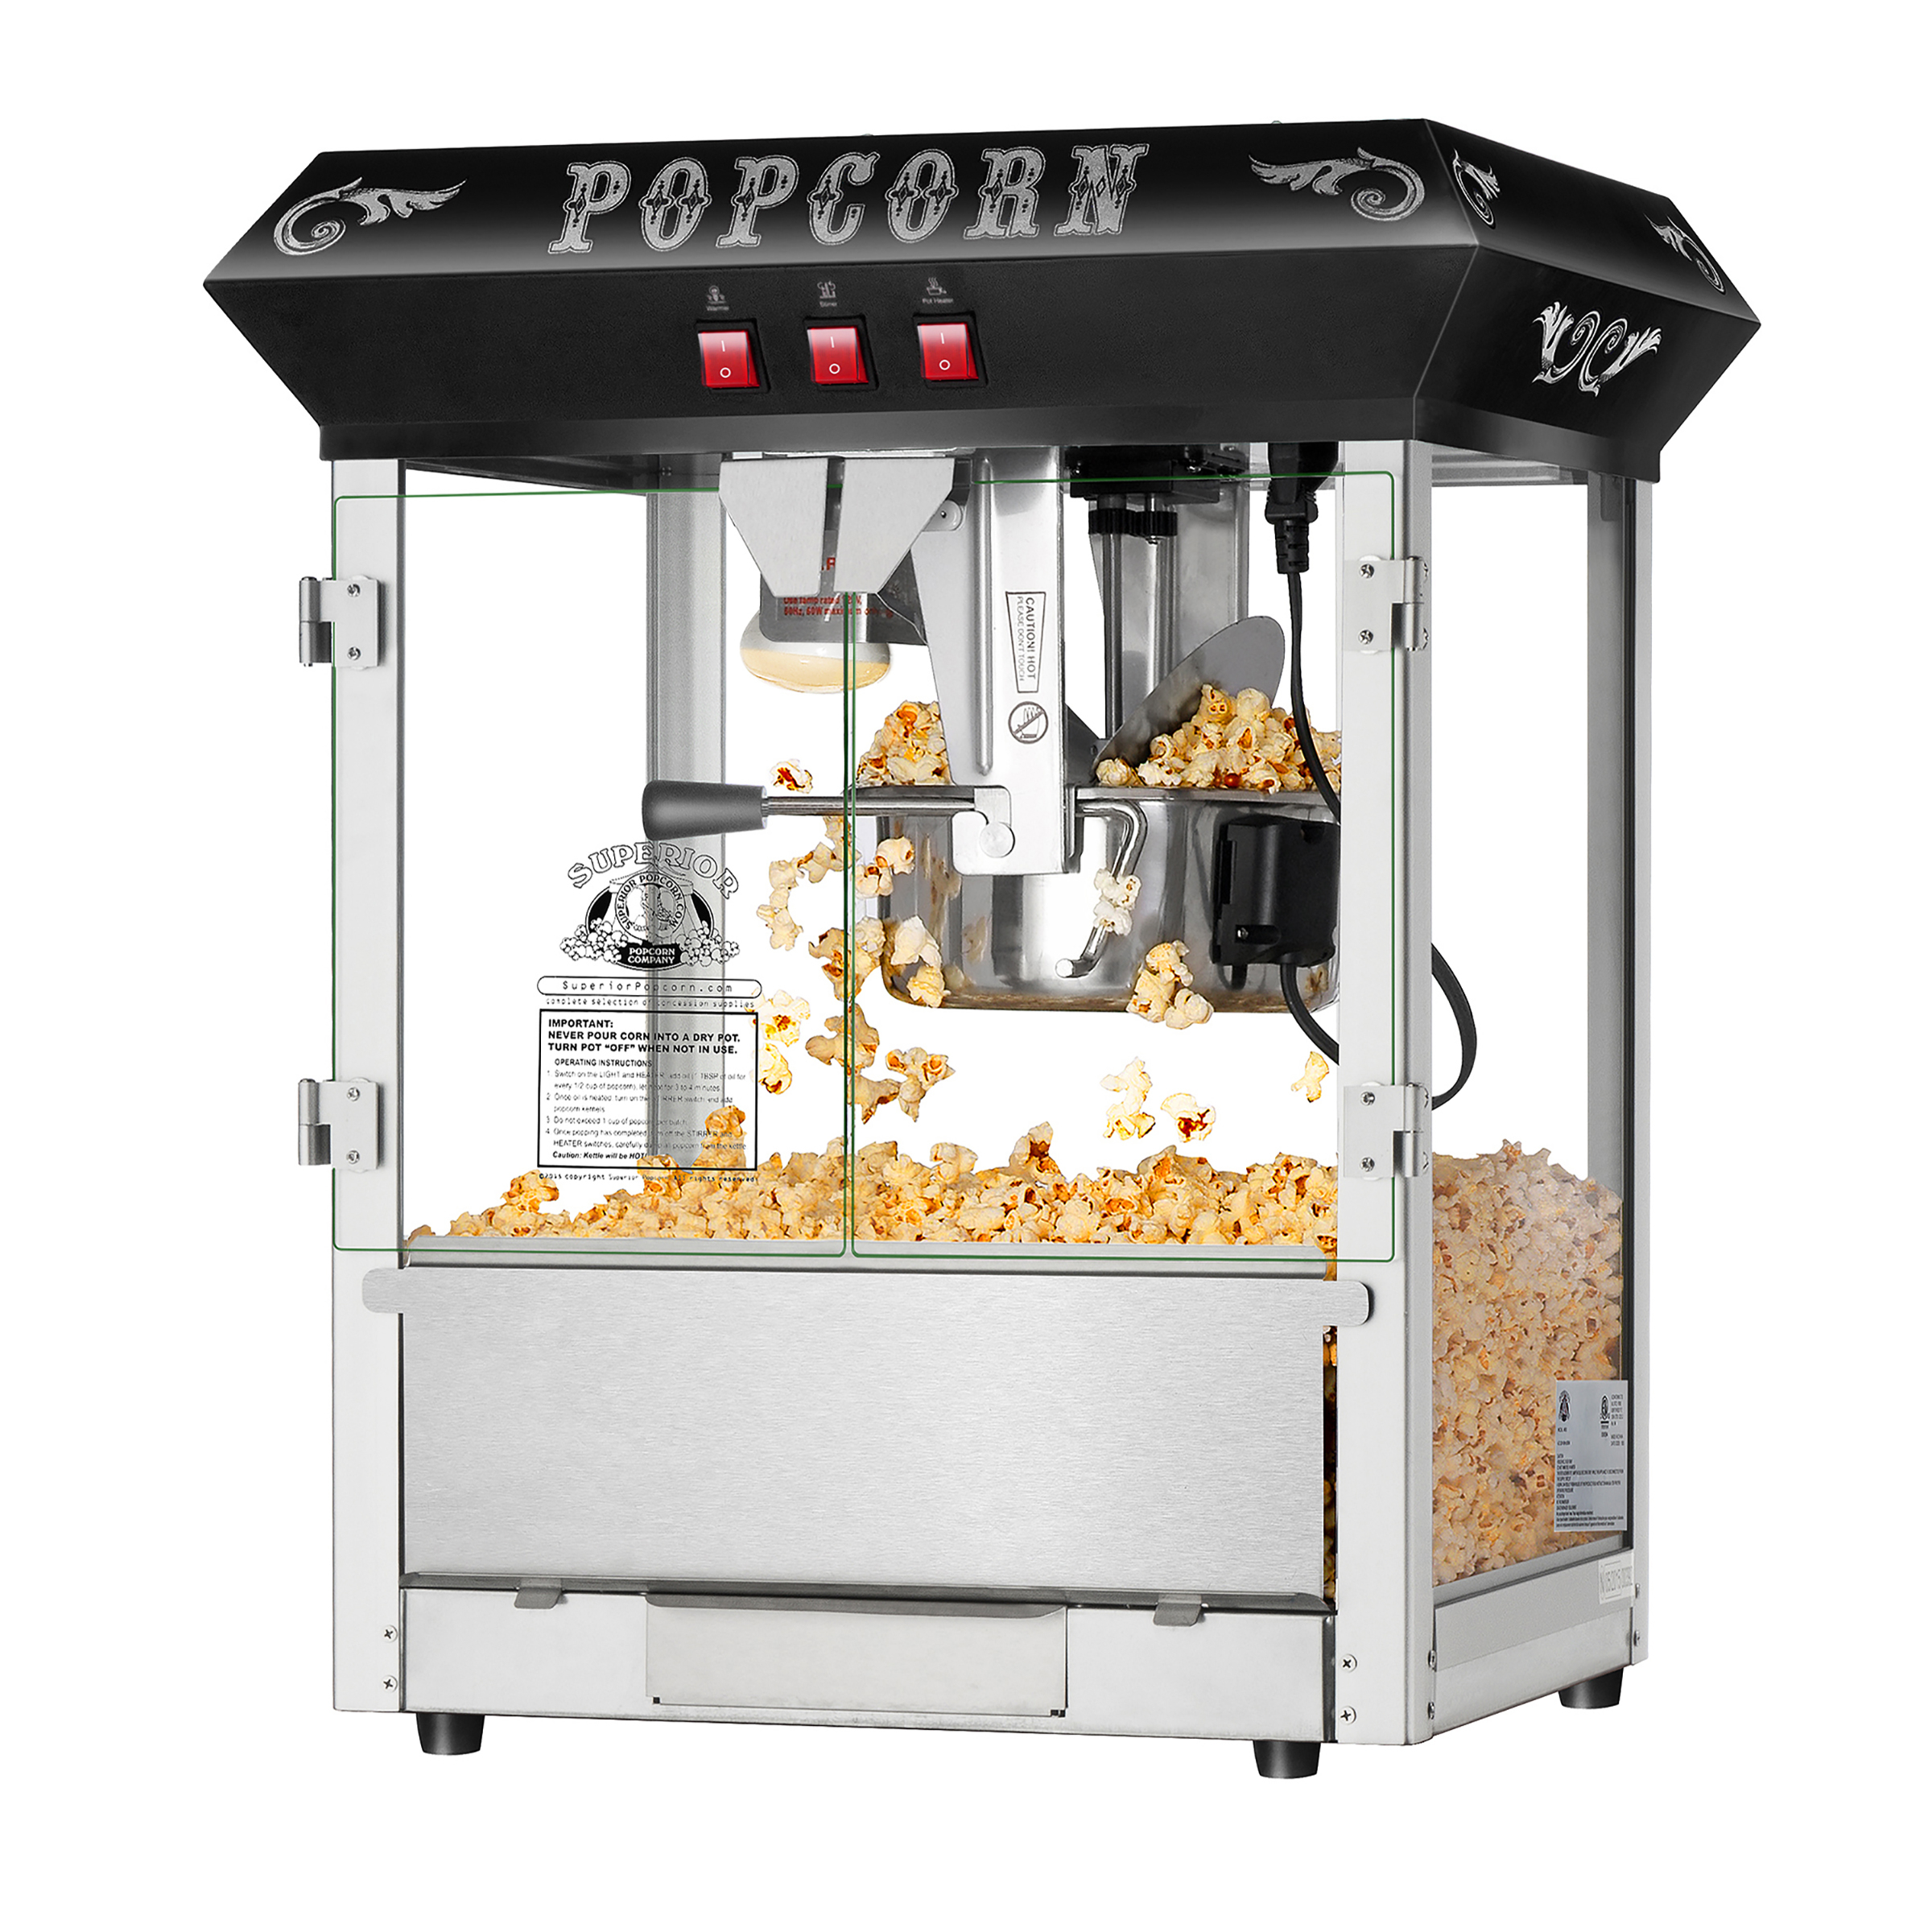 Dtx Intl Fresh Countertop Style Popcorn Popper Machine Makes Appro Gallons Per Batch Superi